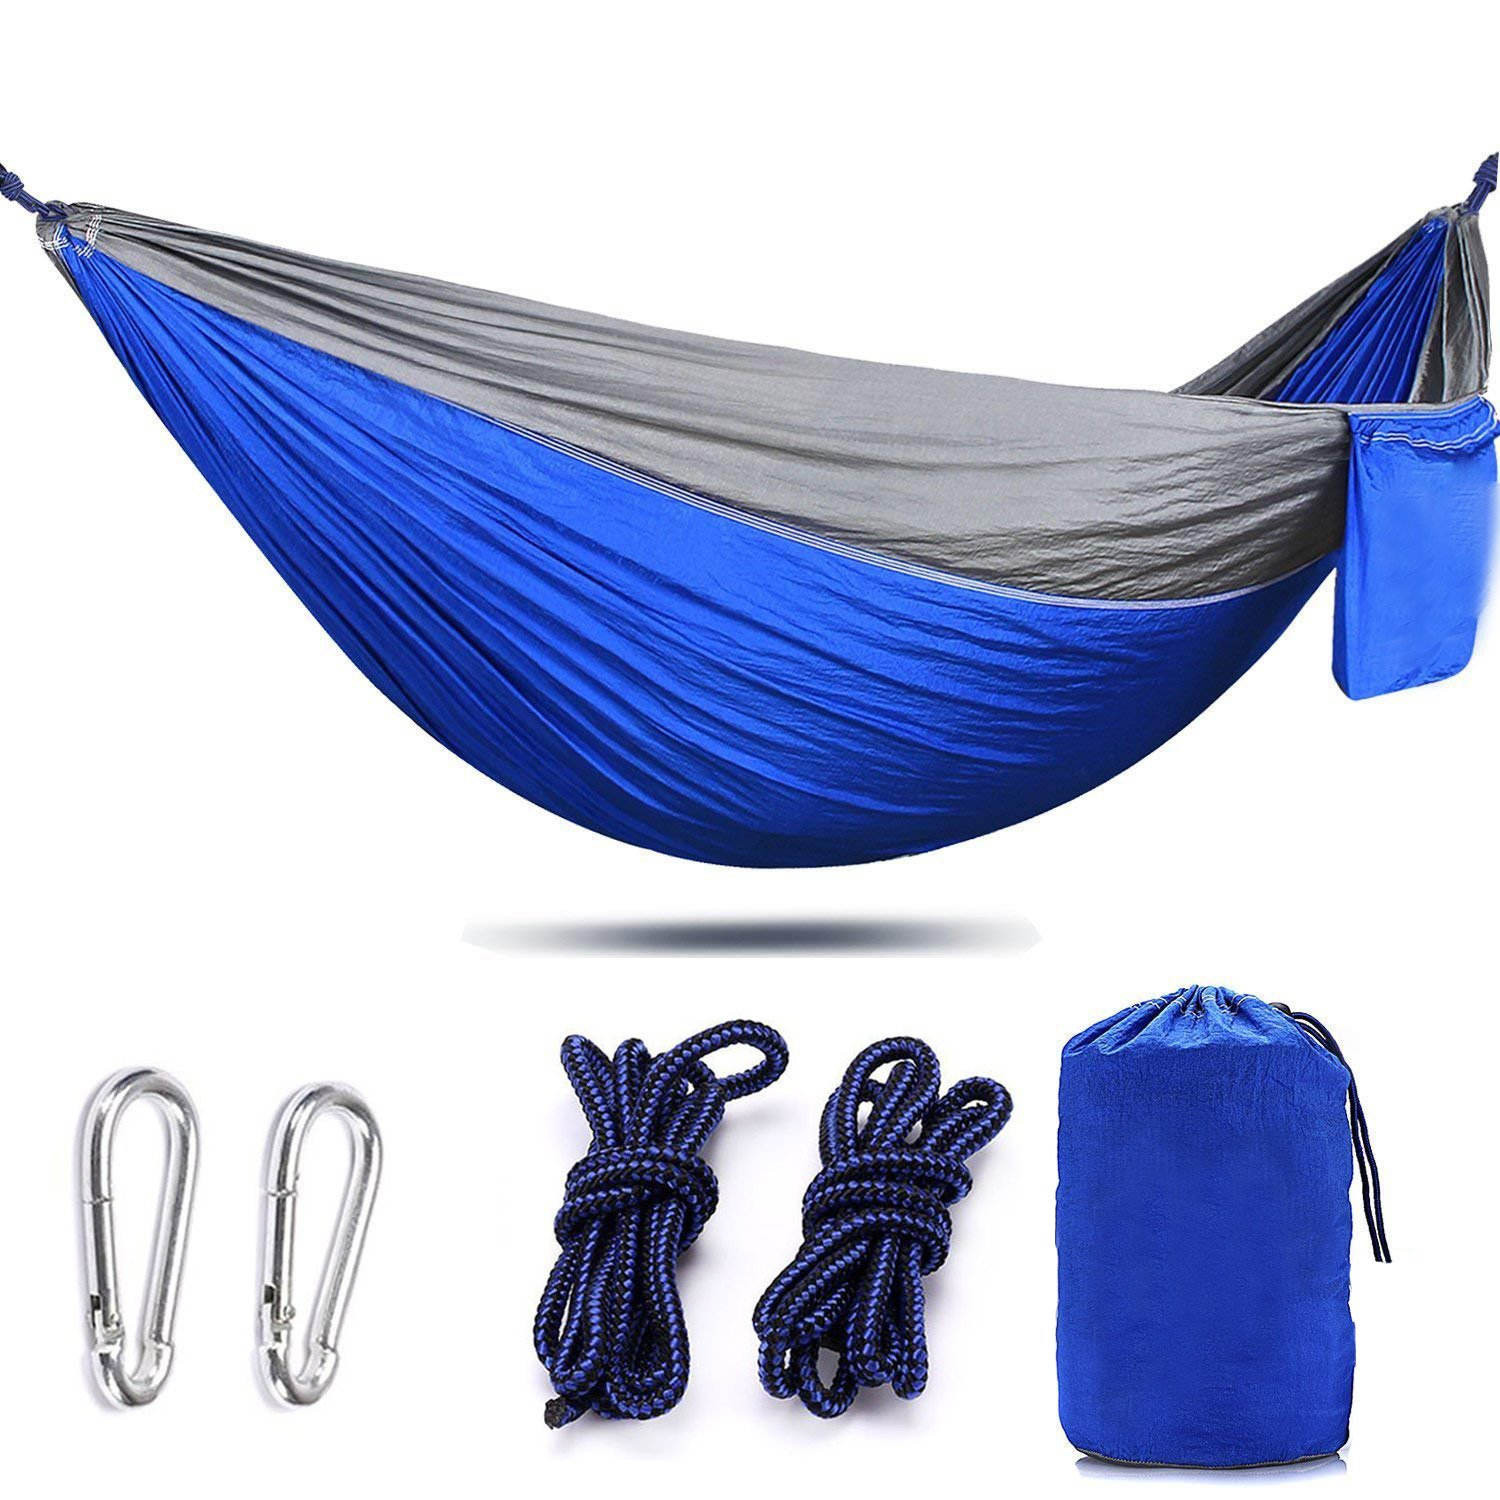 AIFUSI Lightweight Camping Hammock Full Set Nylon Parachute Hammock with Set of Tree Straps & Carbon for Camping, Backpacking, Travel, Backyard, Beach Blue by AIFUSI